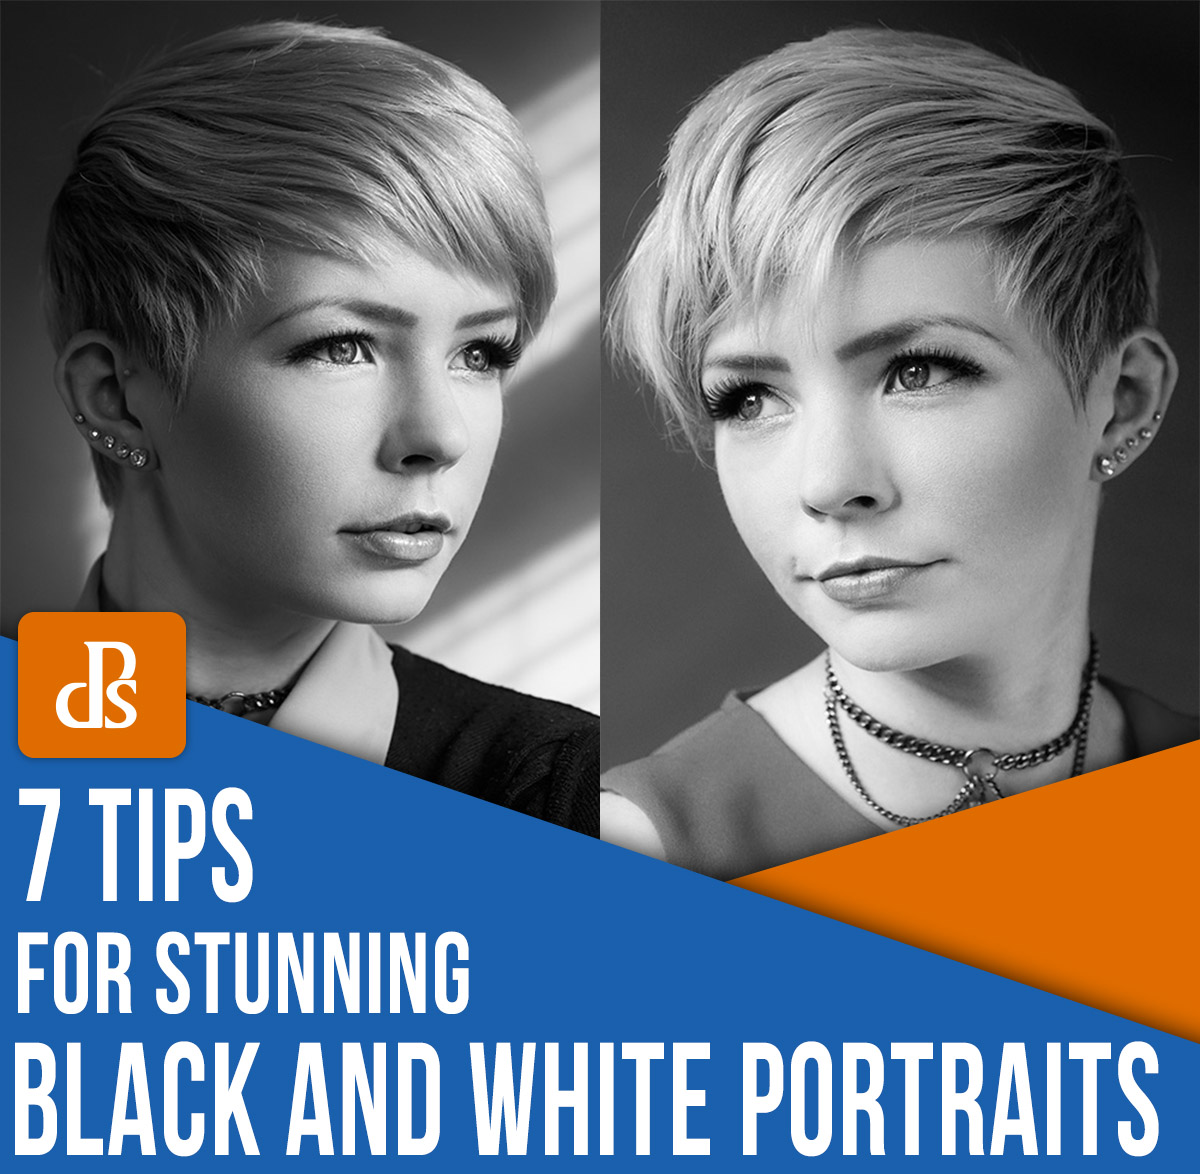 tips for black and white portrait photography